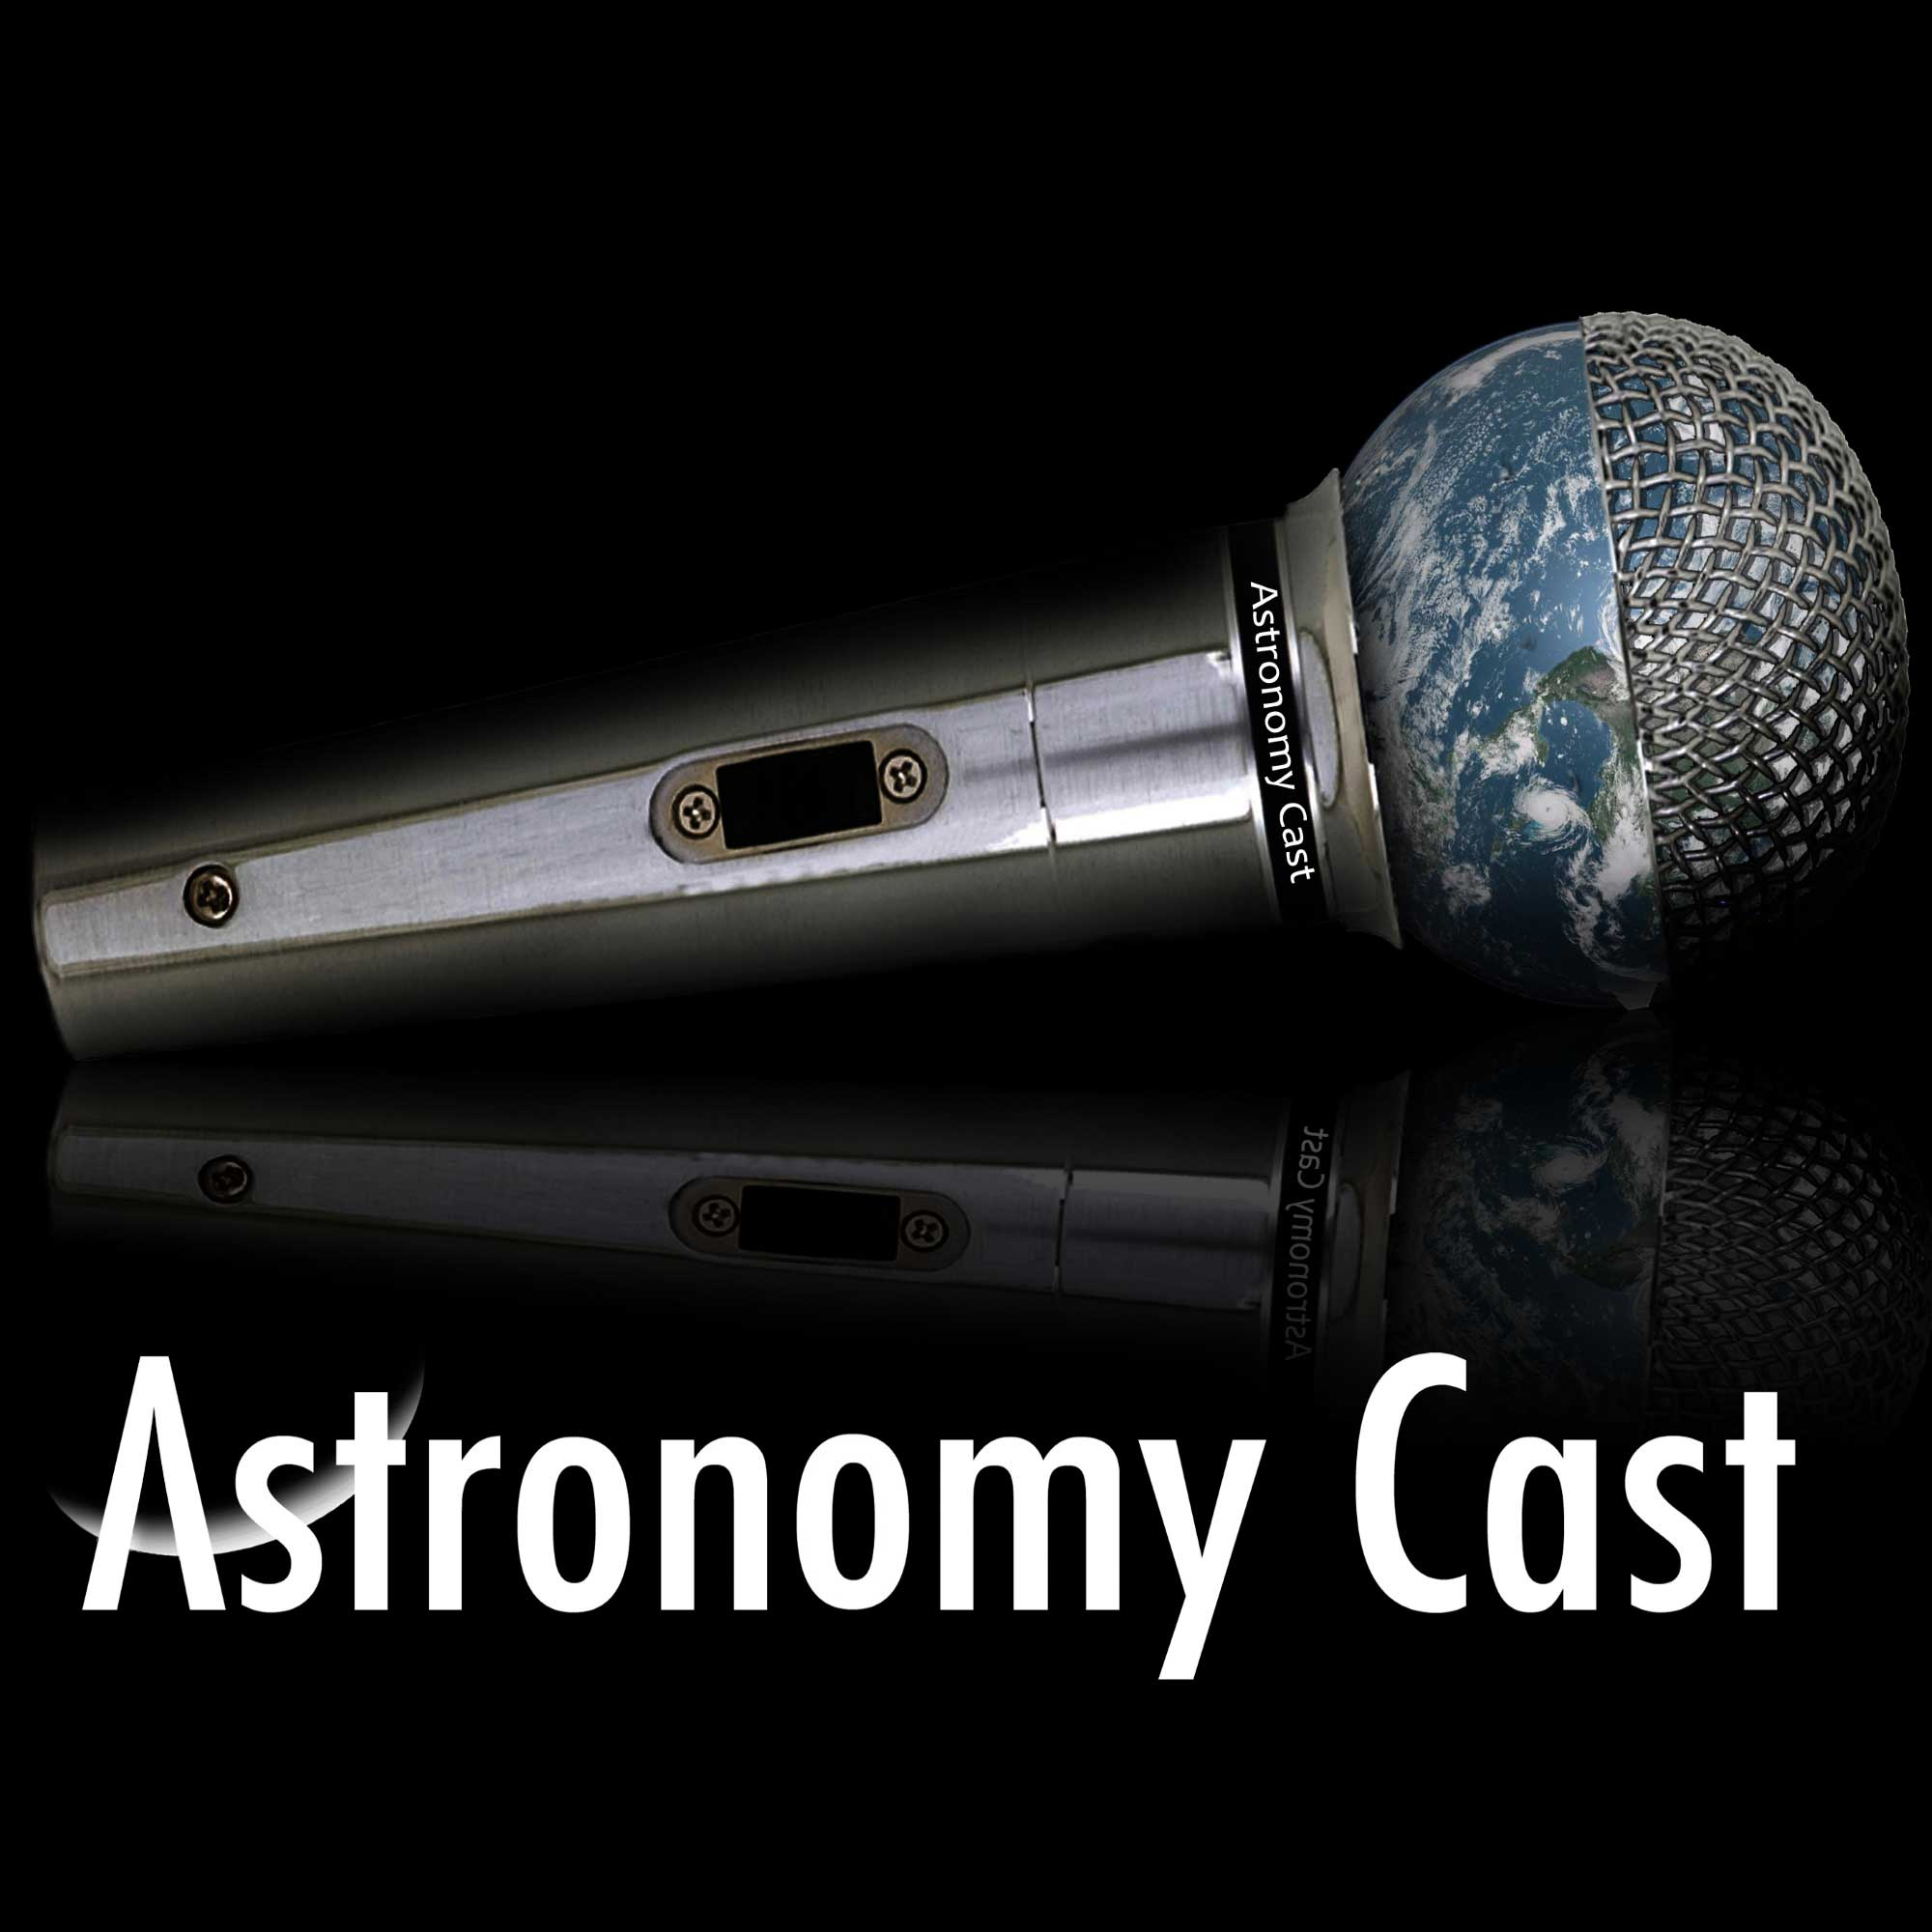 Ep. 586: Life As We Know It: Habitable Exoplanets & Extremophiles